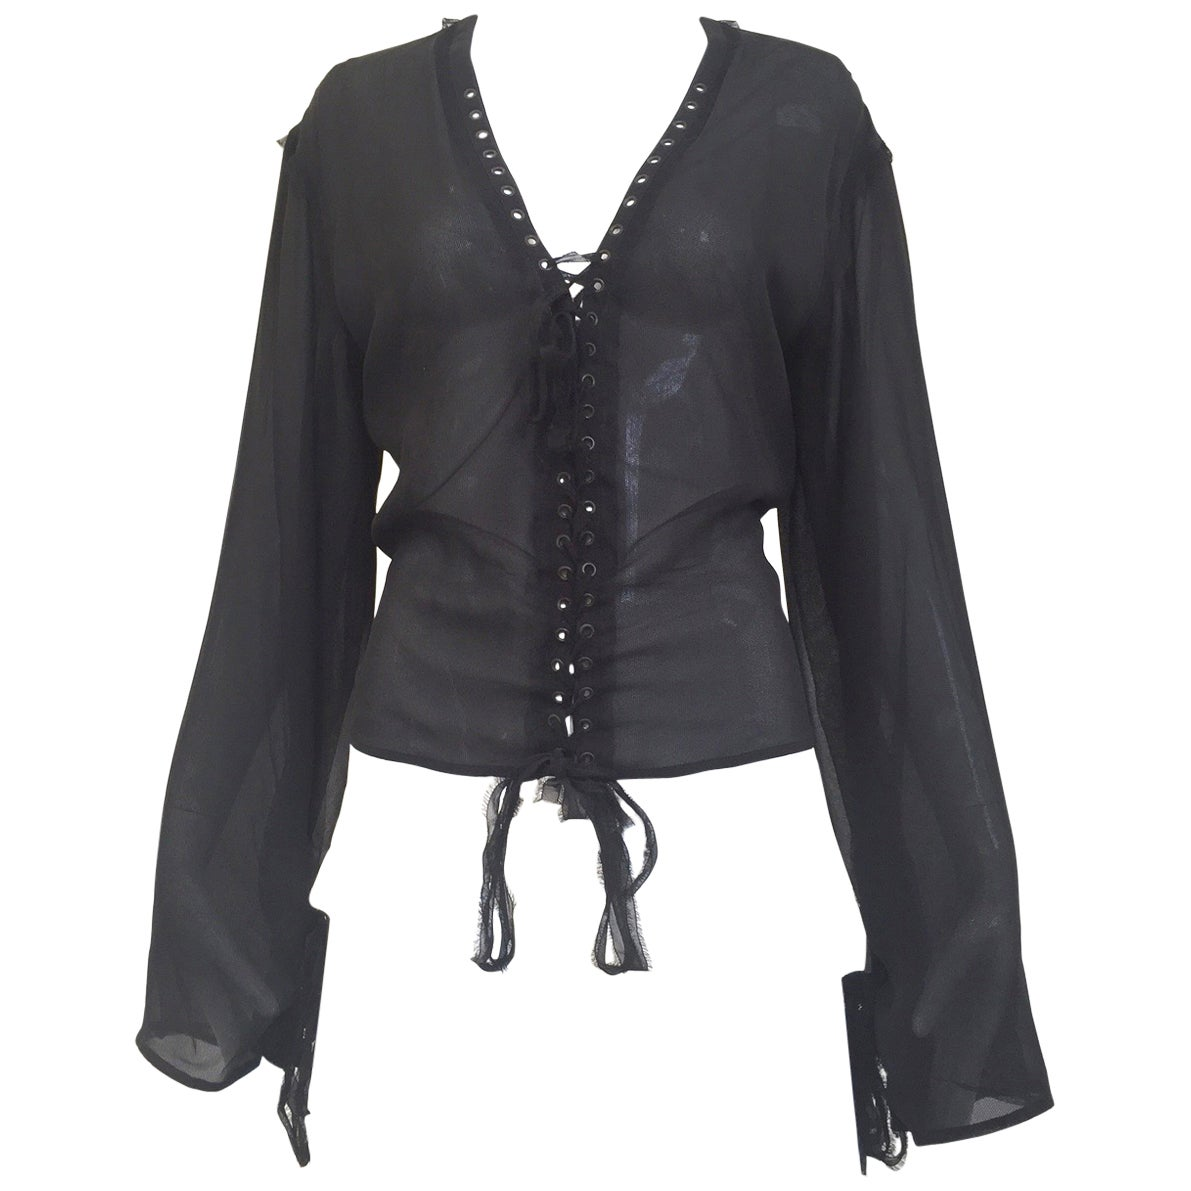 0f7a6e4fedb Yves Saint Laurent by Tom Ford black silk blouse For Sale at 1stdibs